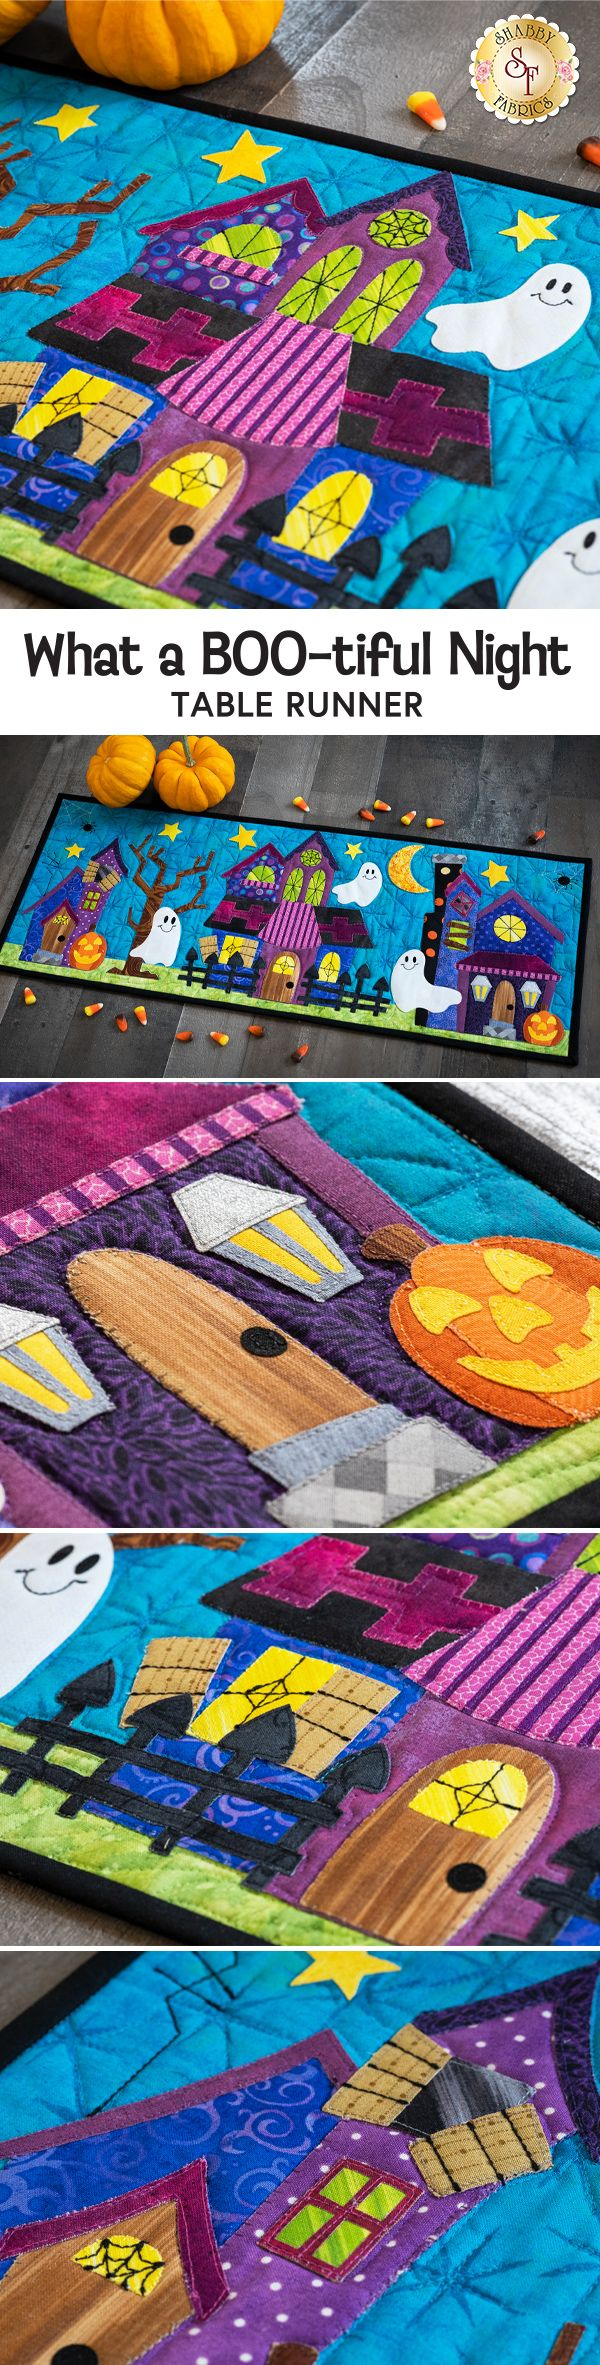 What a Boo-tiful Night Table Runner Kit